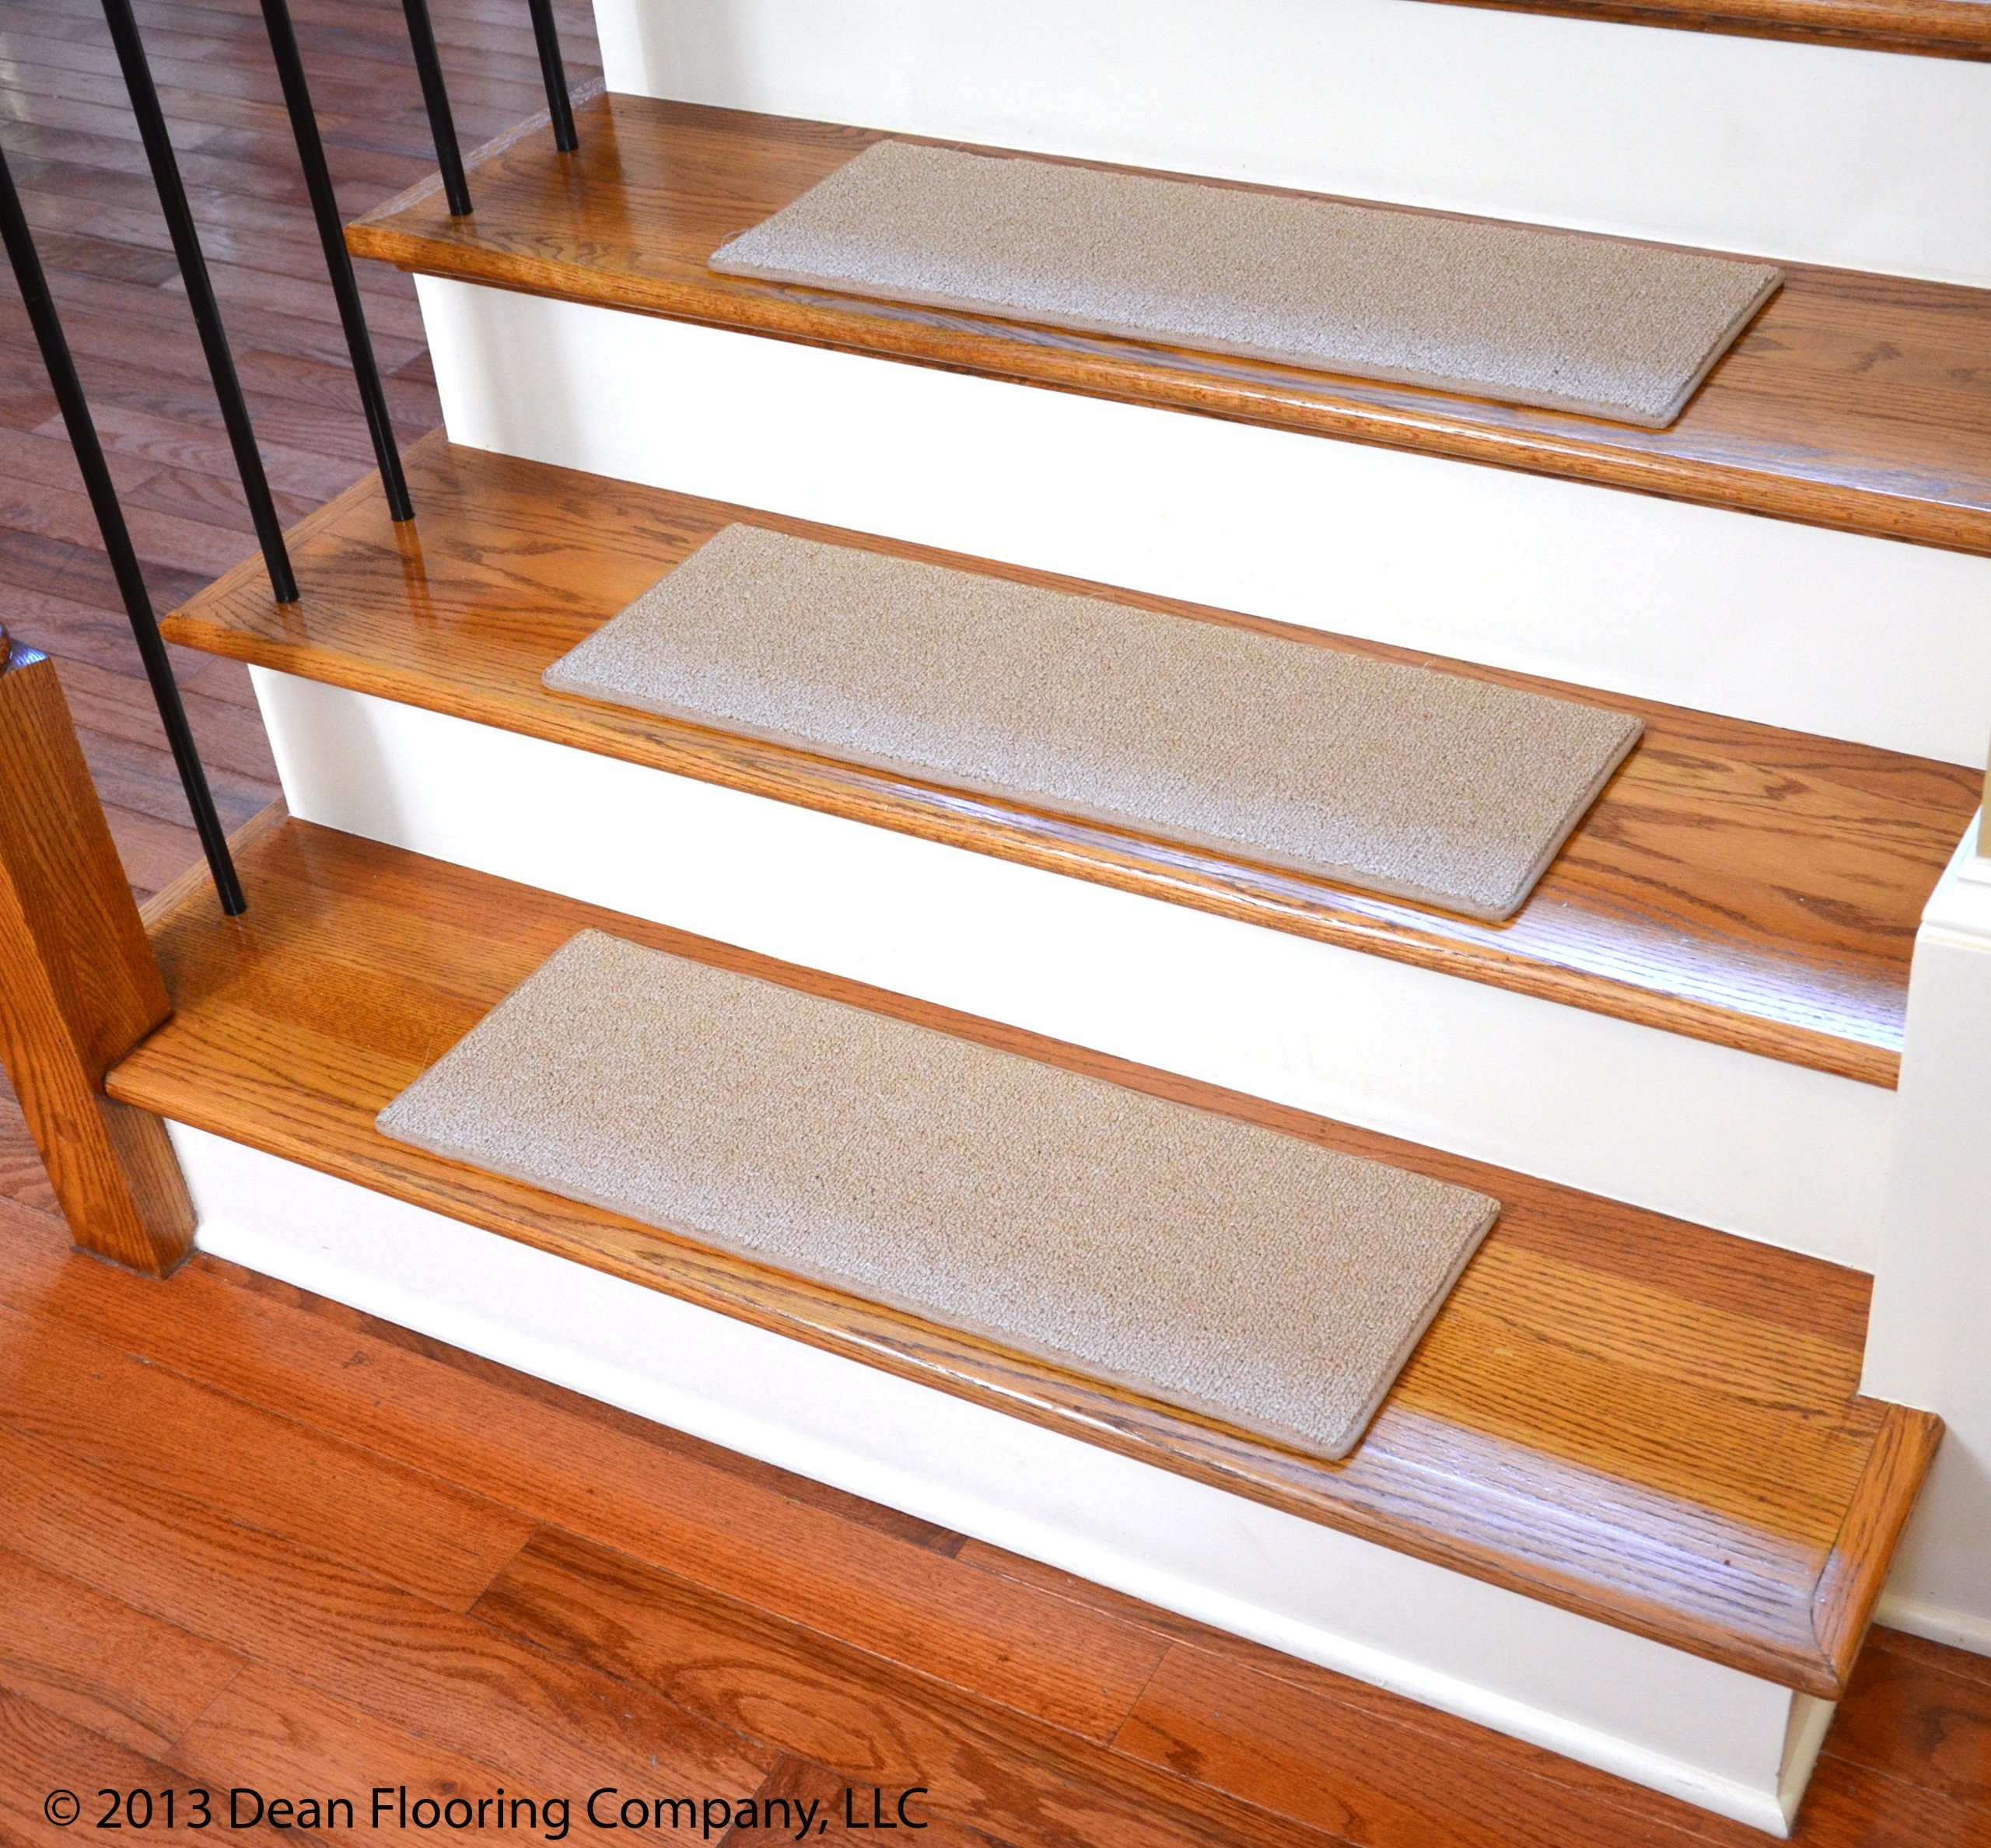 Best ideas about Non Slip Stair Treads . Save or Pin 20 Collection of Non Slip Carpet Stair Treads Indoor Now.